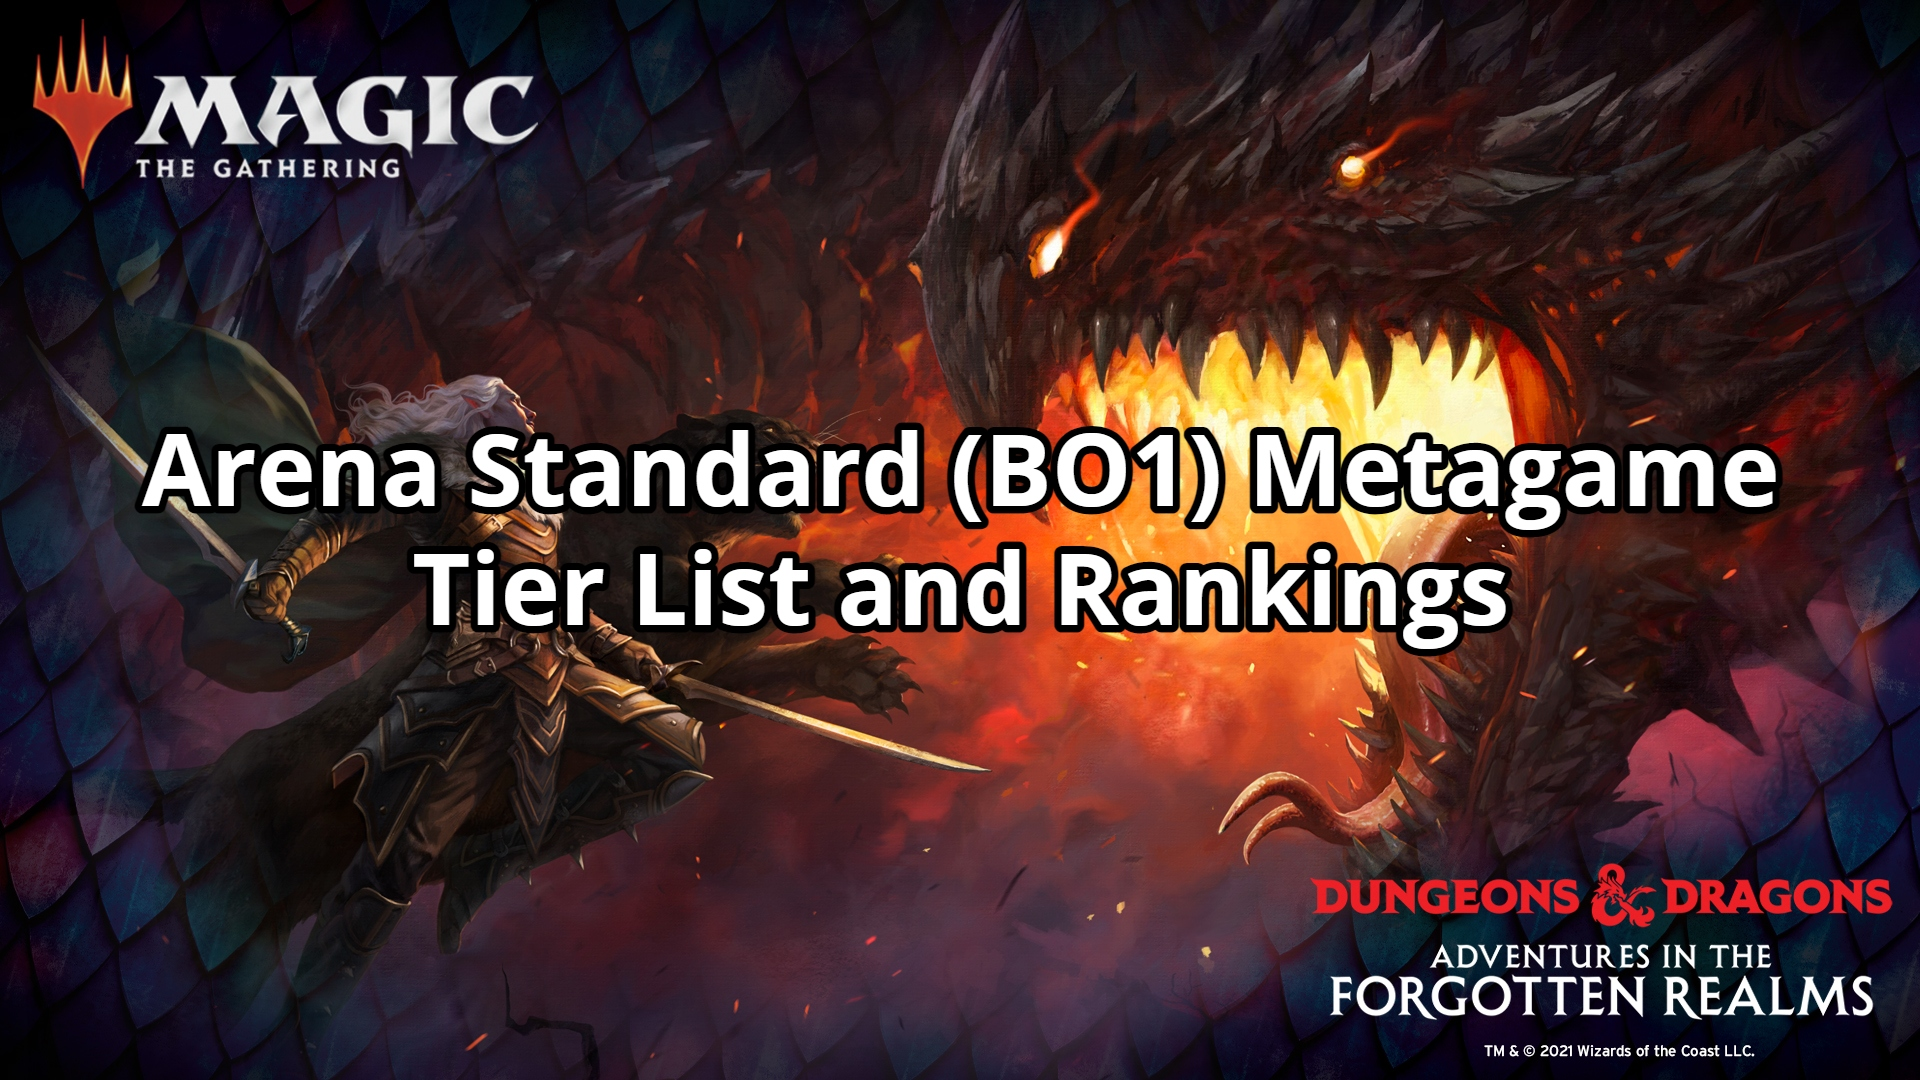 Arena Standard (BO1) Metagame Tier List and Rankings